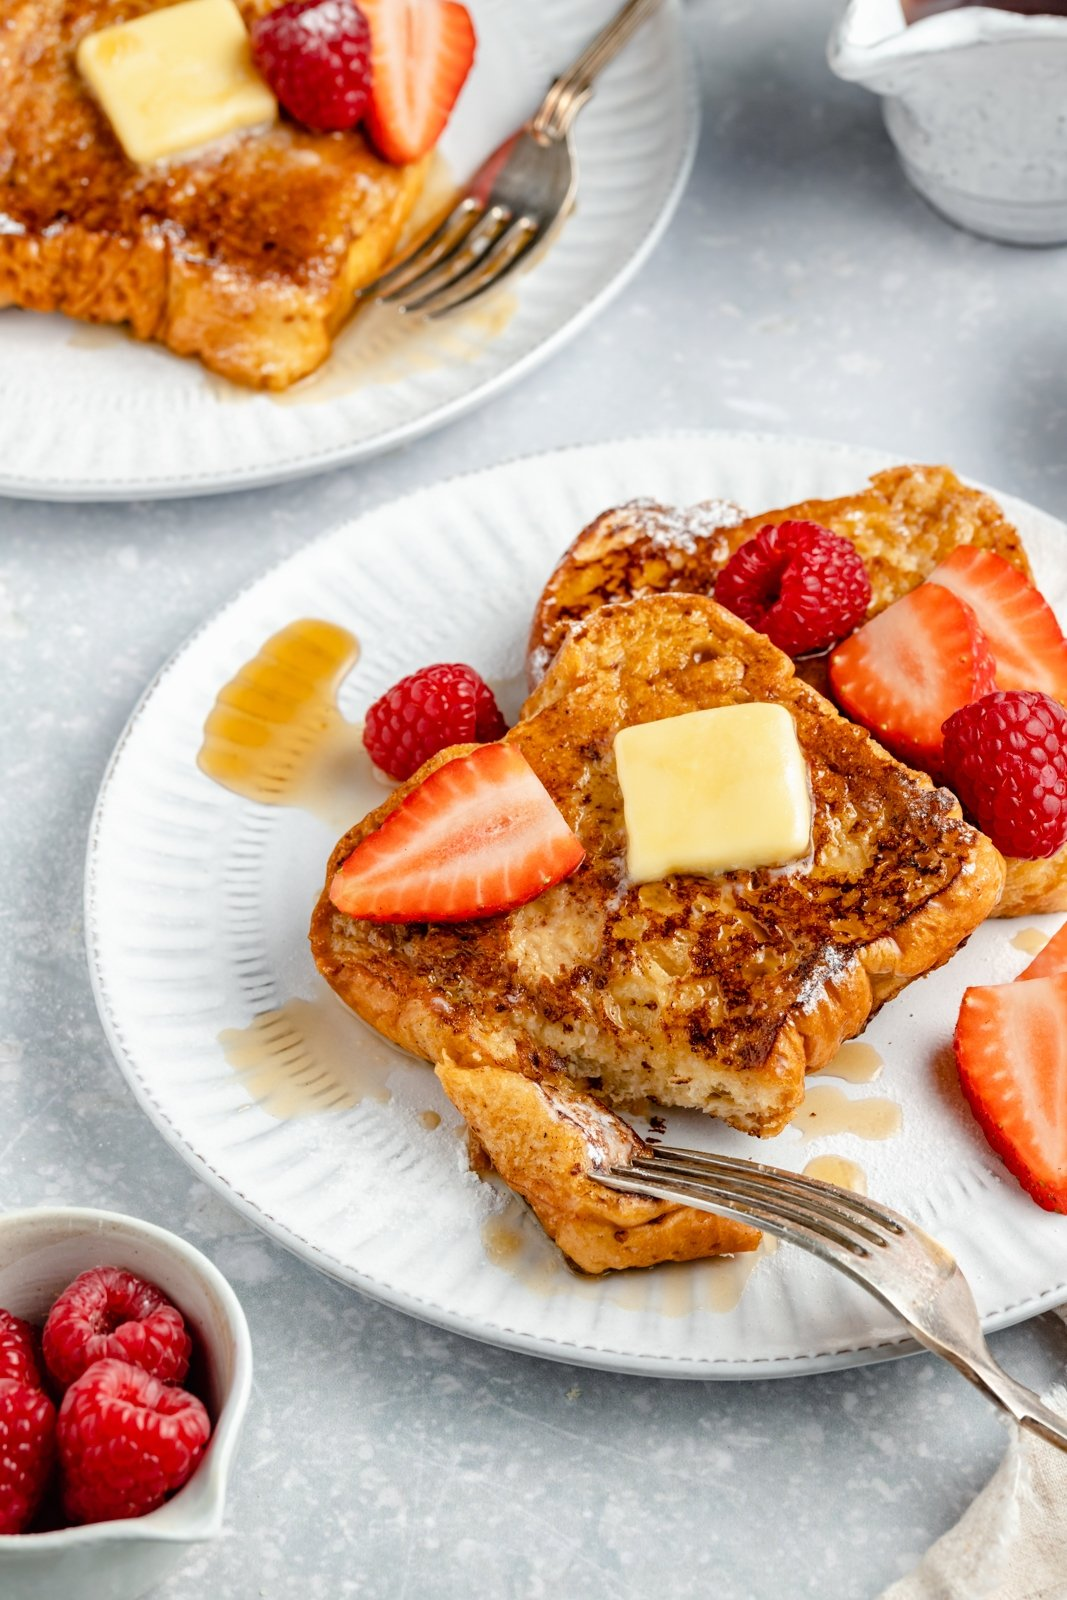 healthy french toast on plate with butter and berries